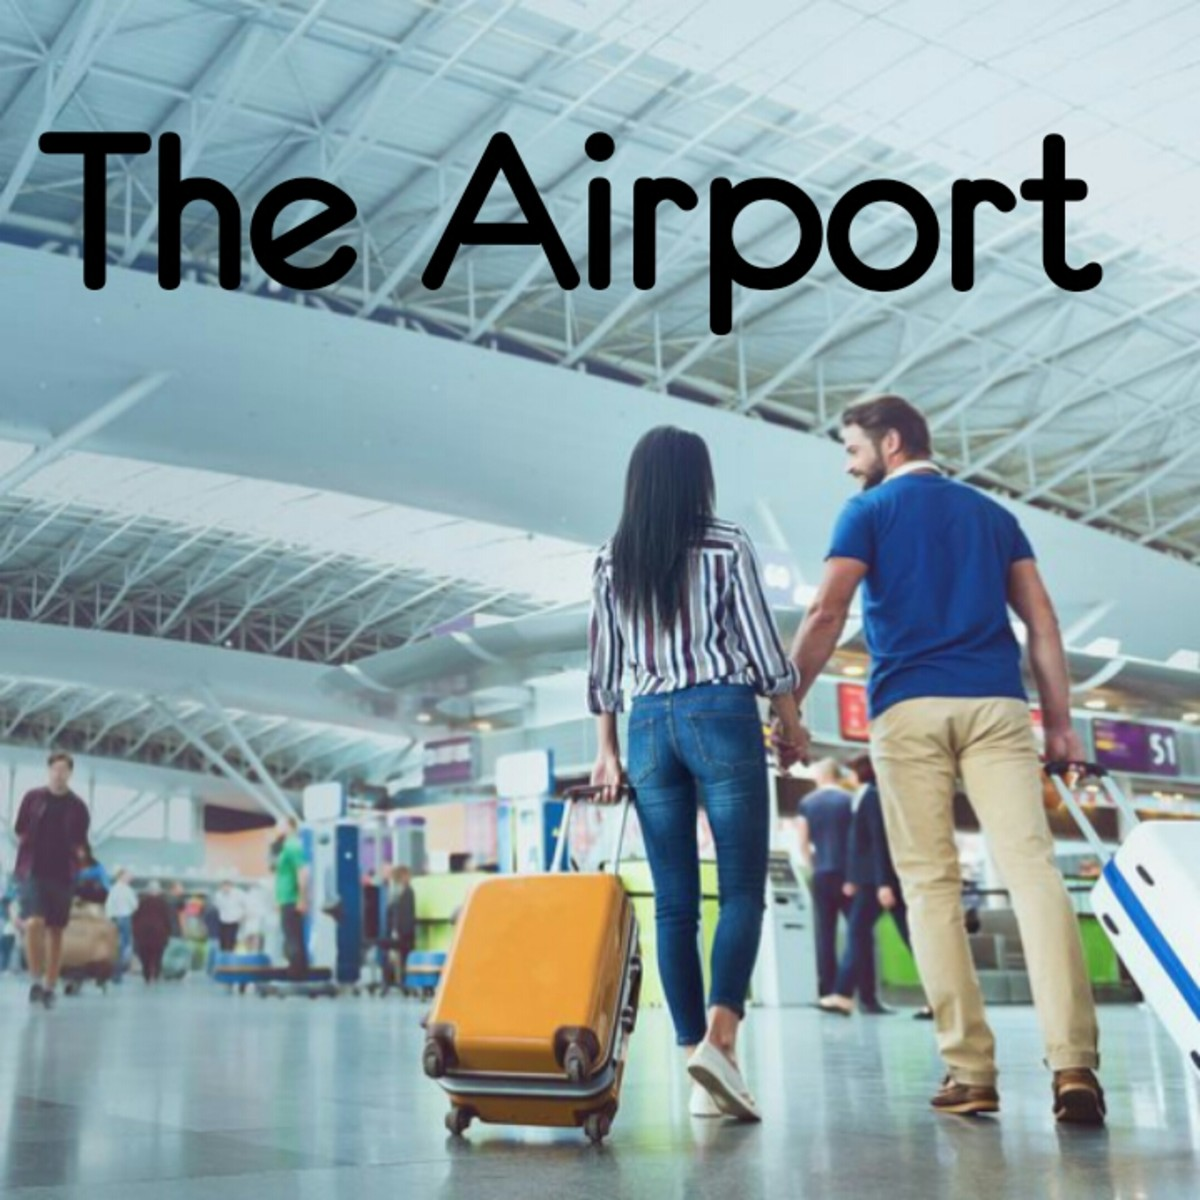 The Airport : A Short Story About Love